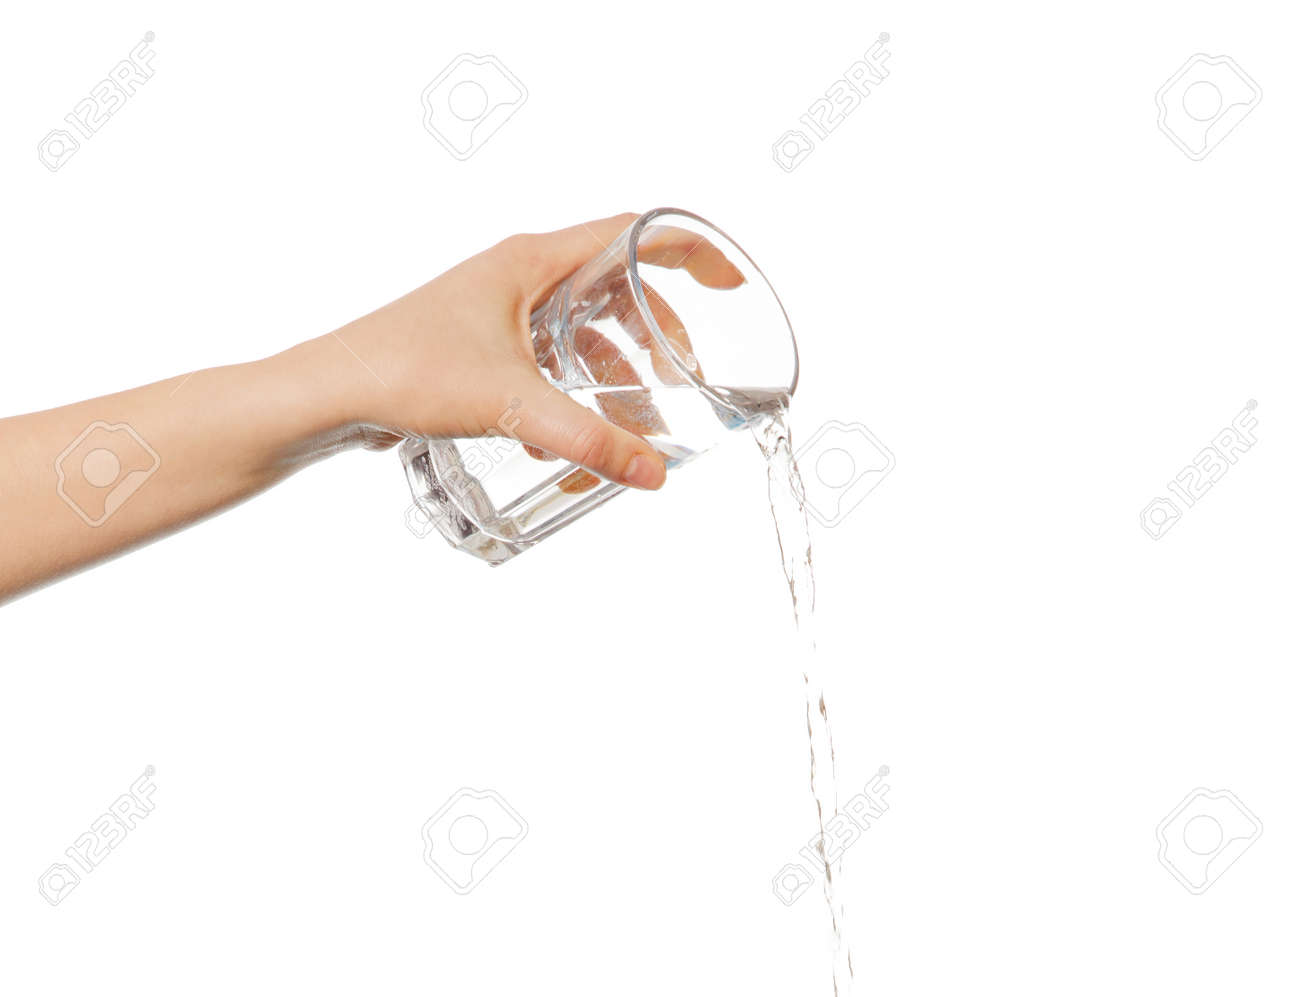 Hand pouring water from glass. - 58109799